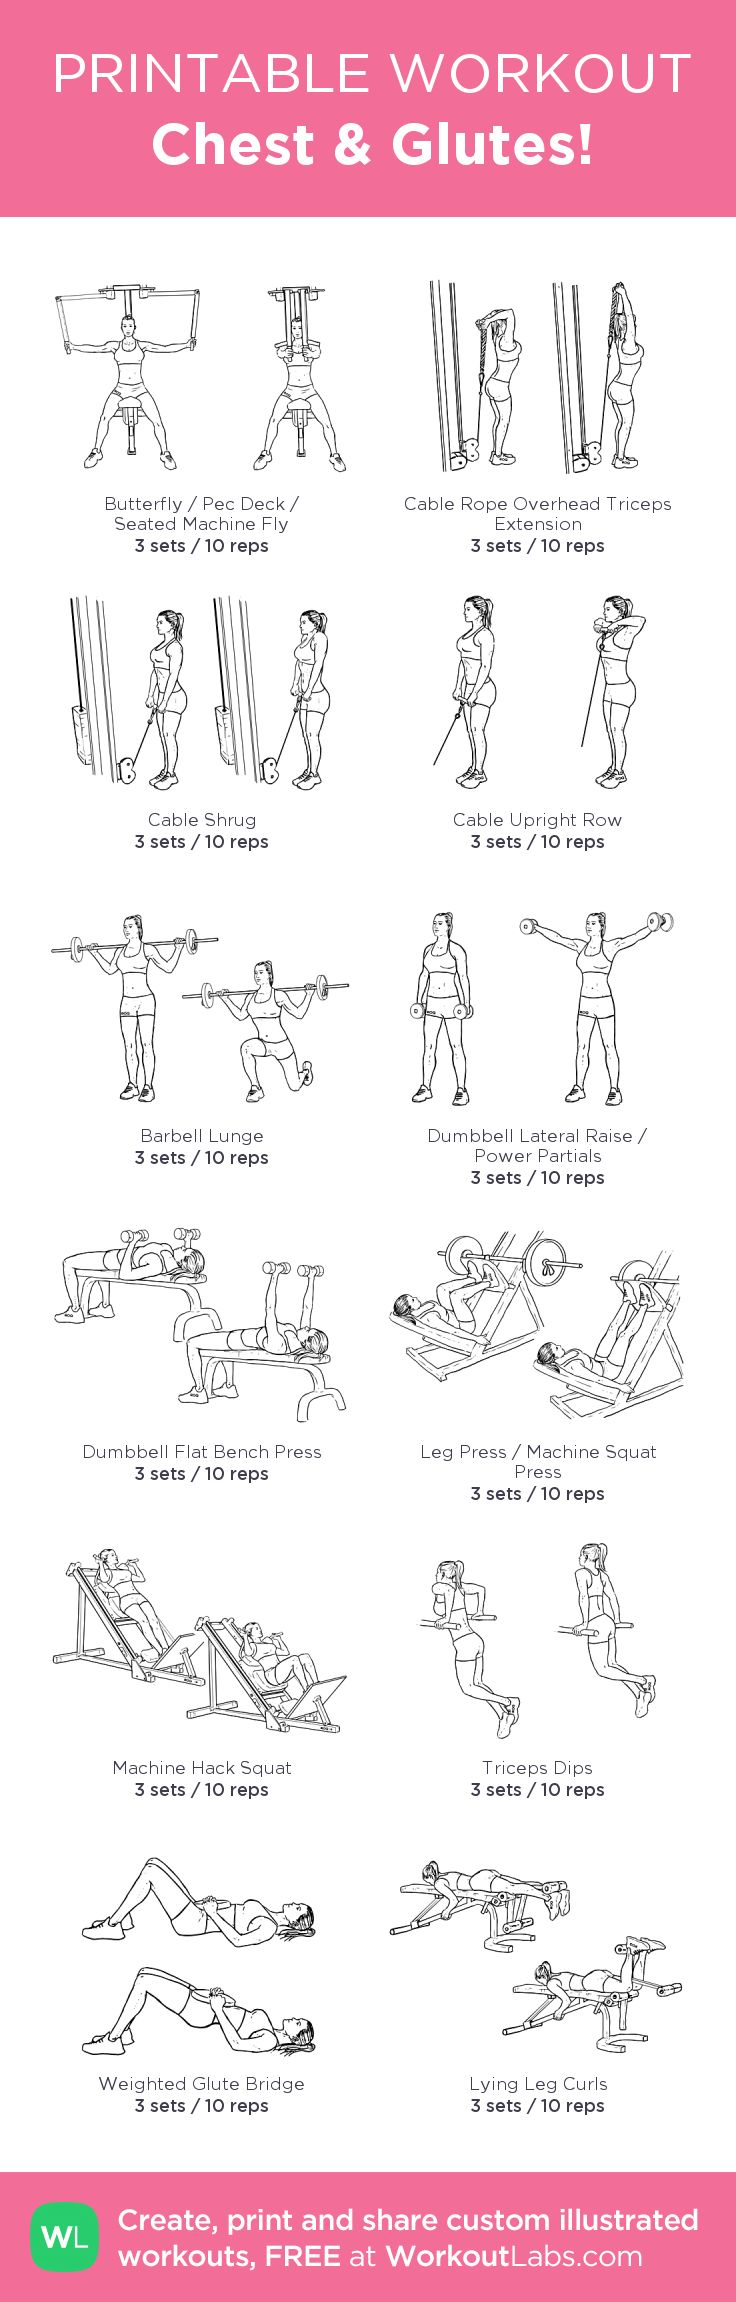 Chest & Glutes!:my visual workout created at WorkoutLabs.com • Click through to customize and download as a FREE PDF! #customworkout